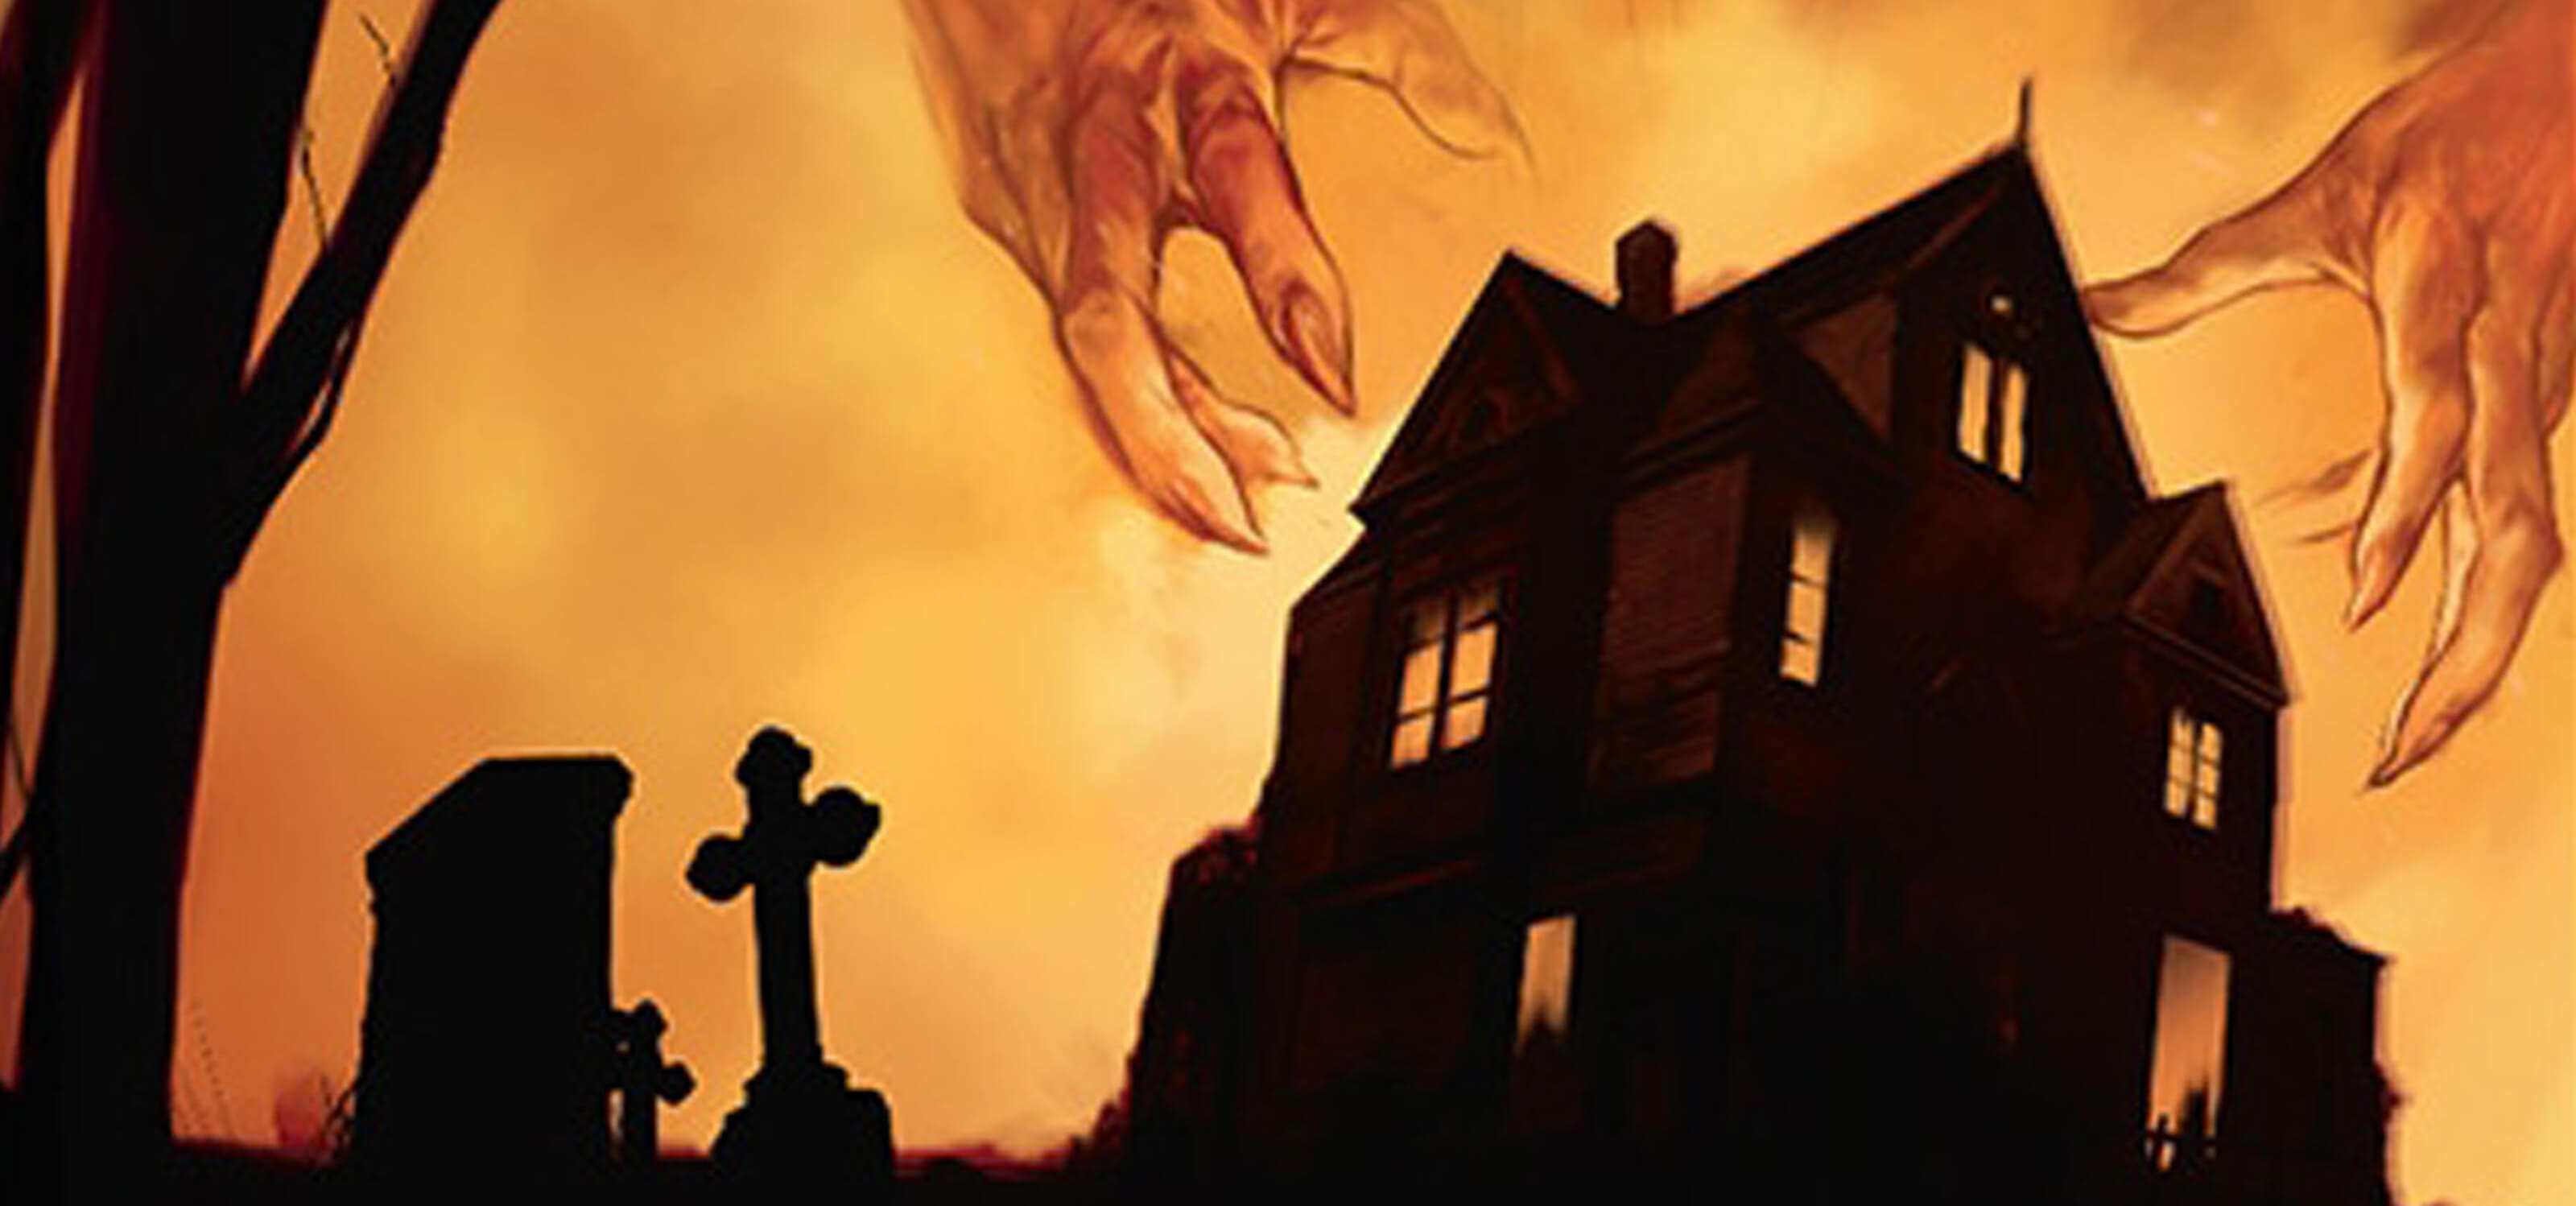 Illustration of a spooky house and giant claw-like hands featured on the box of Betrayal at House on the Hill